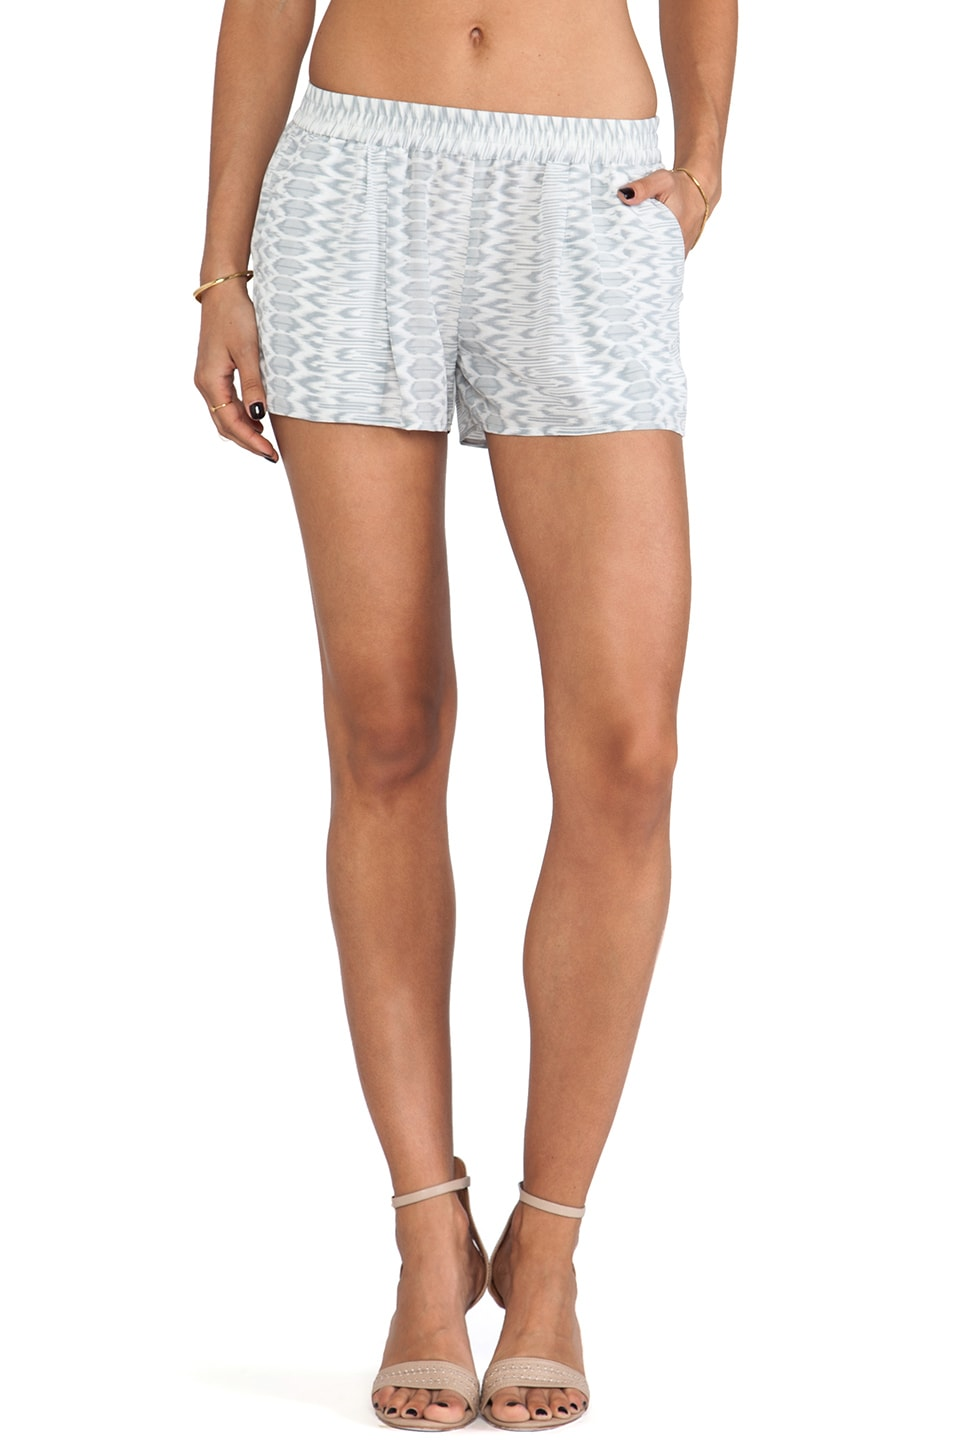 Joie Percier Shorts in Silver Fox